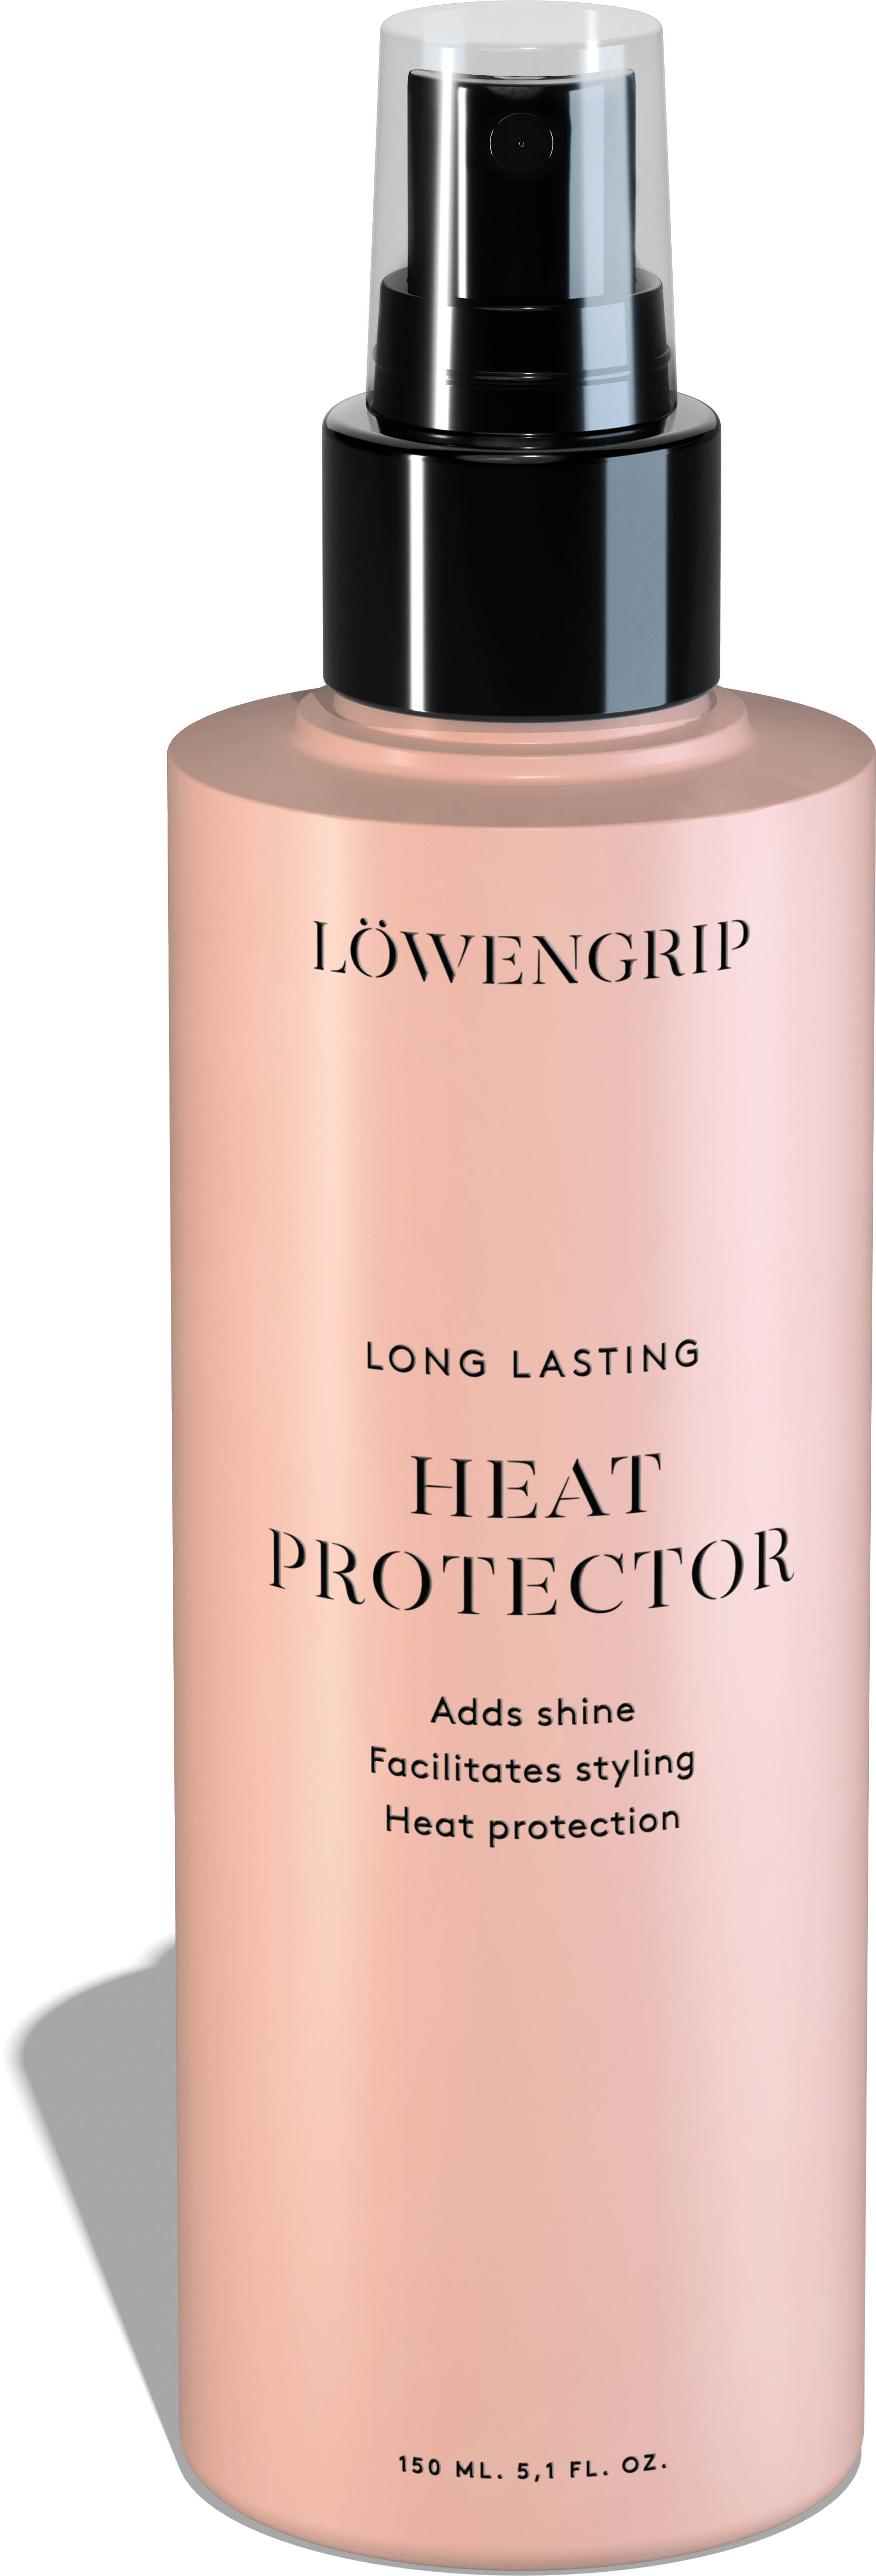 Long Lasting - Heat Protector 150 ml